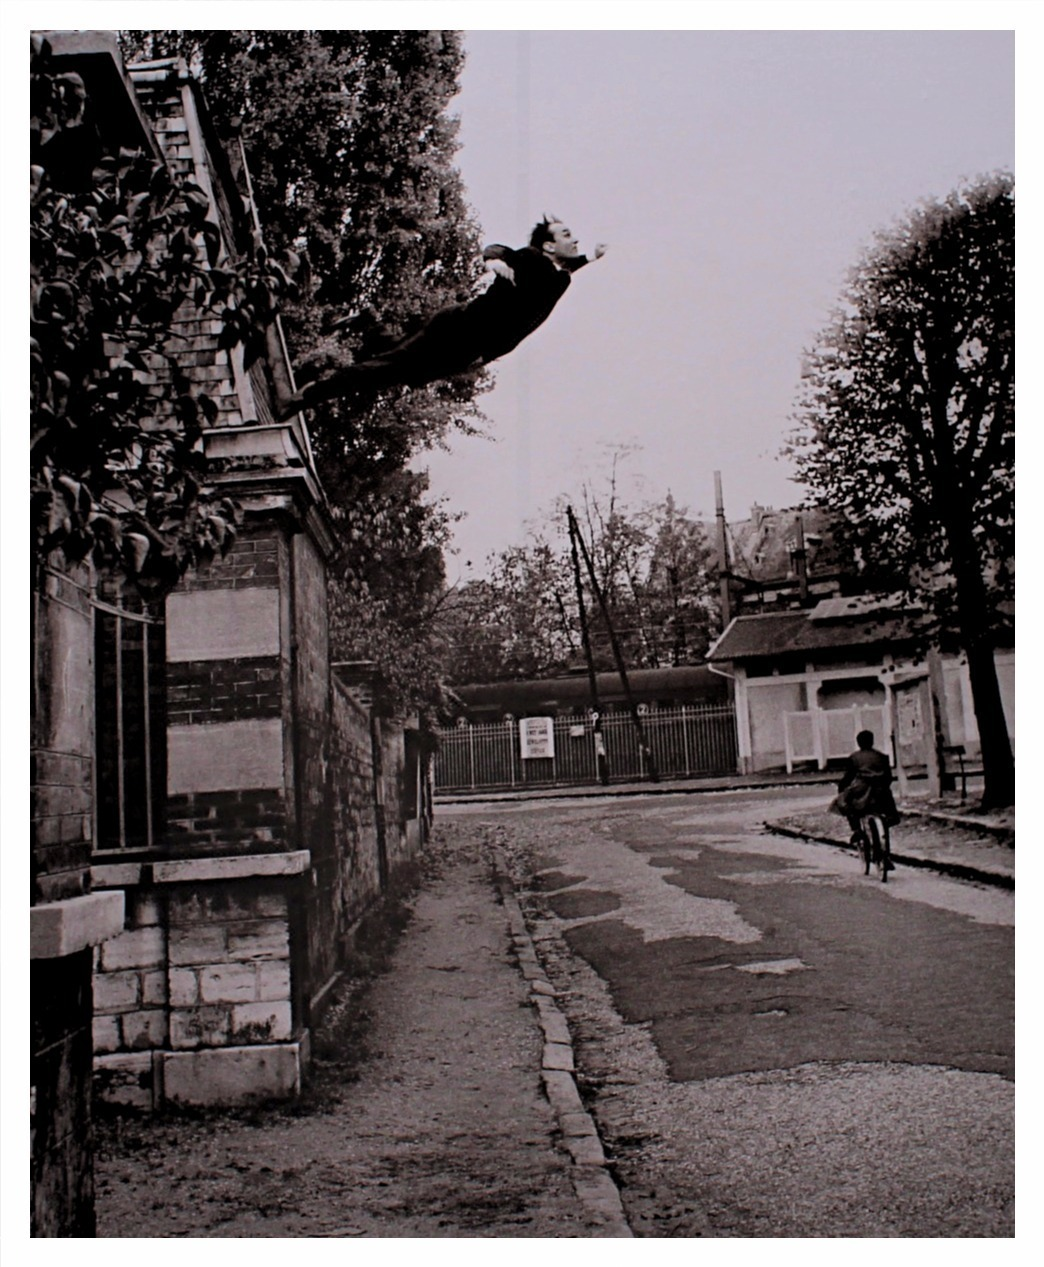 Yves Klein, black and white, and jump image